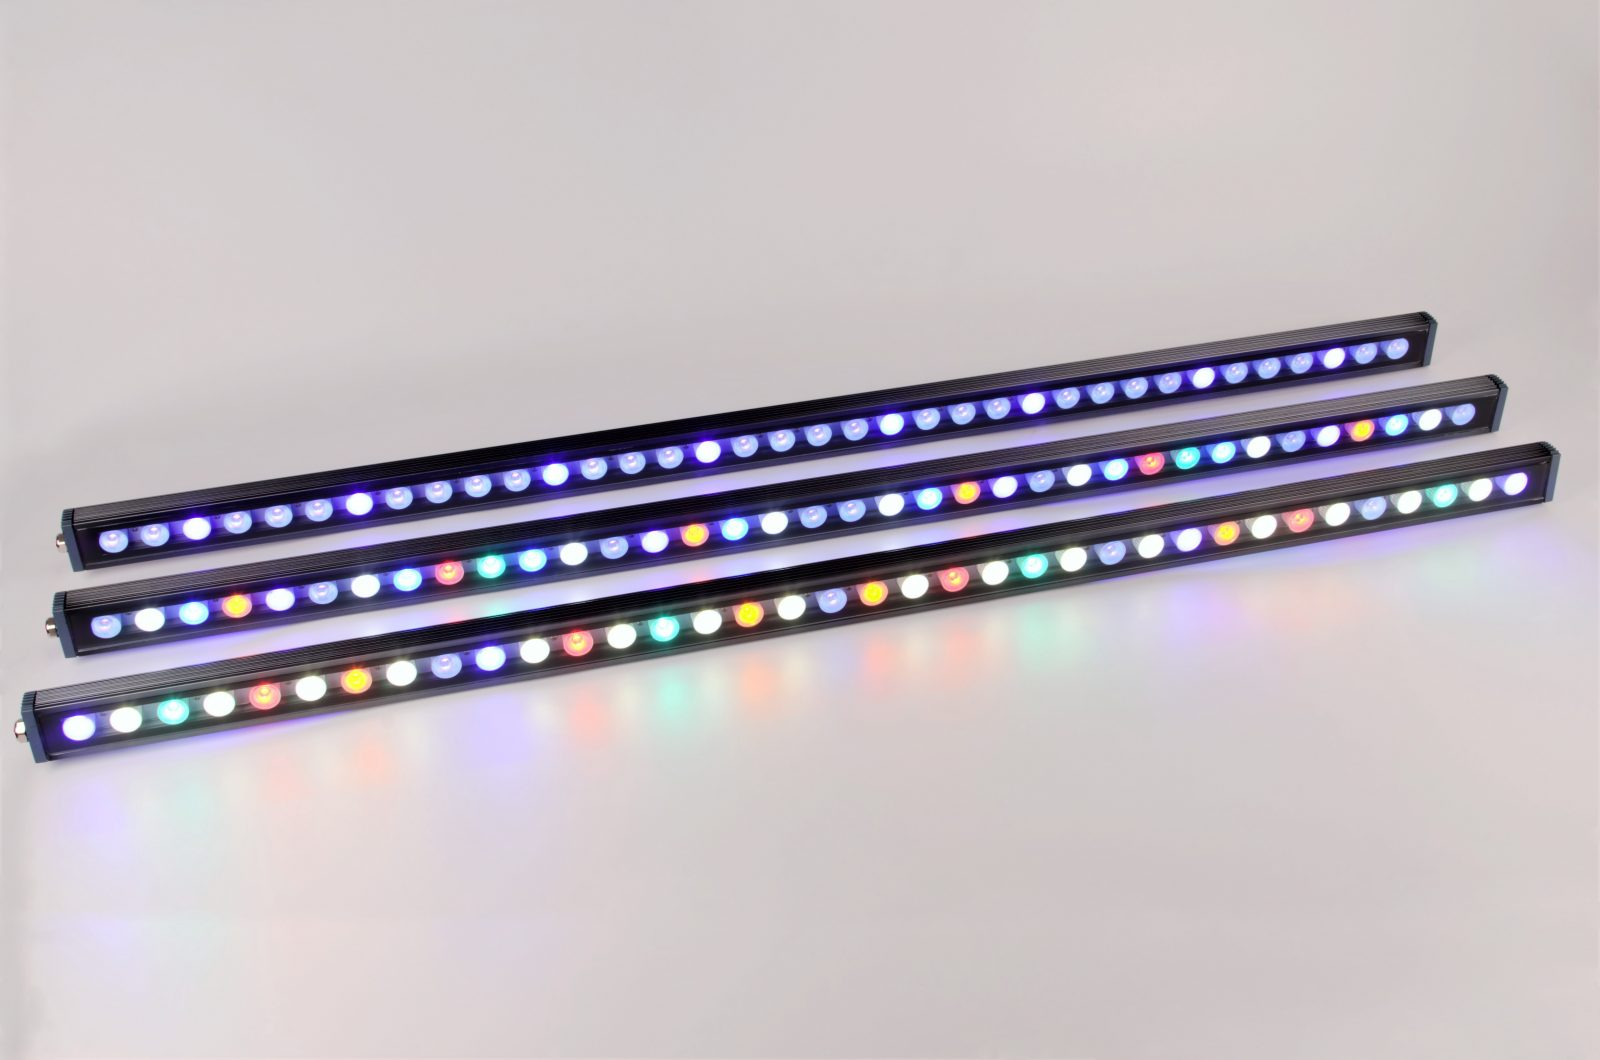 Strip LED akuarium paling apik